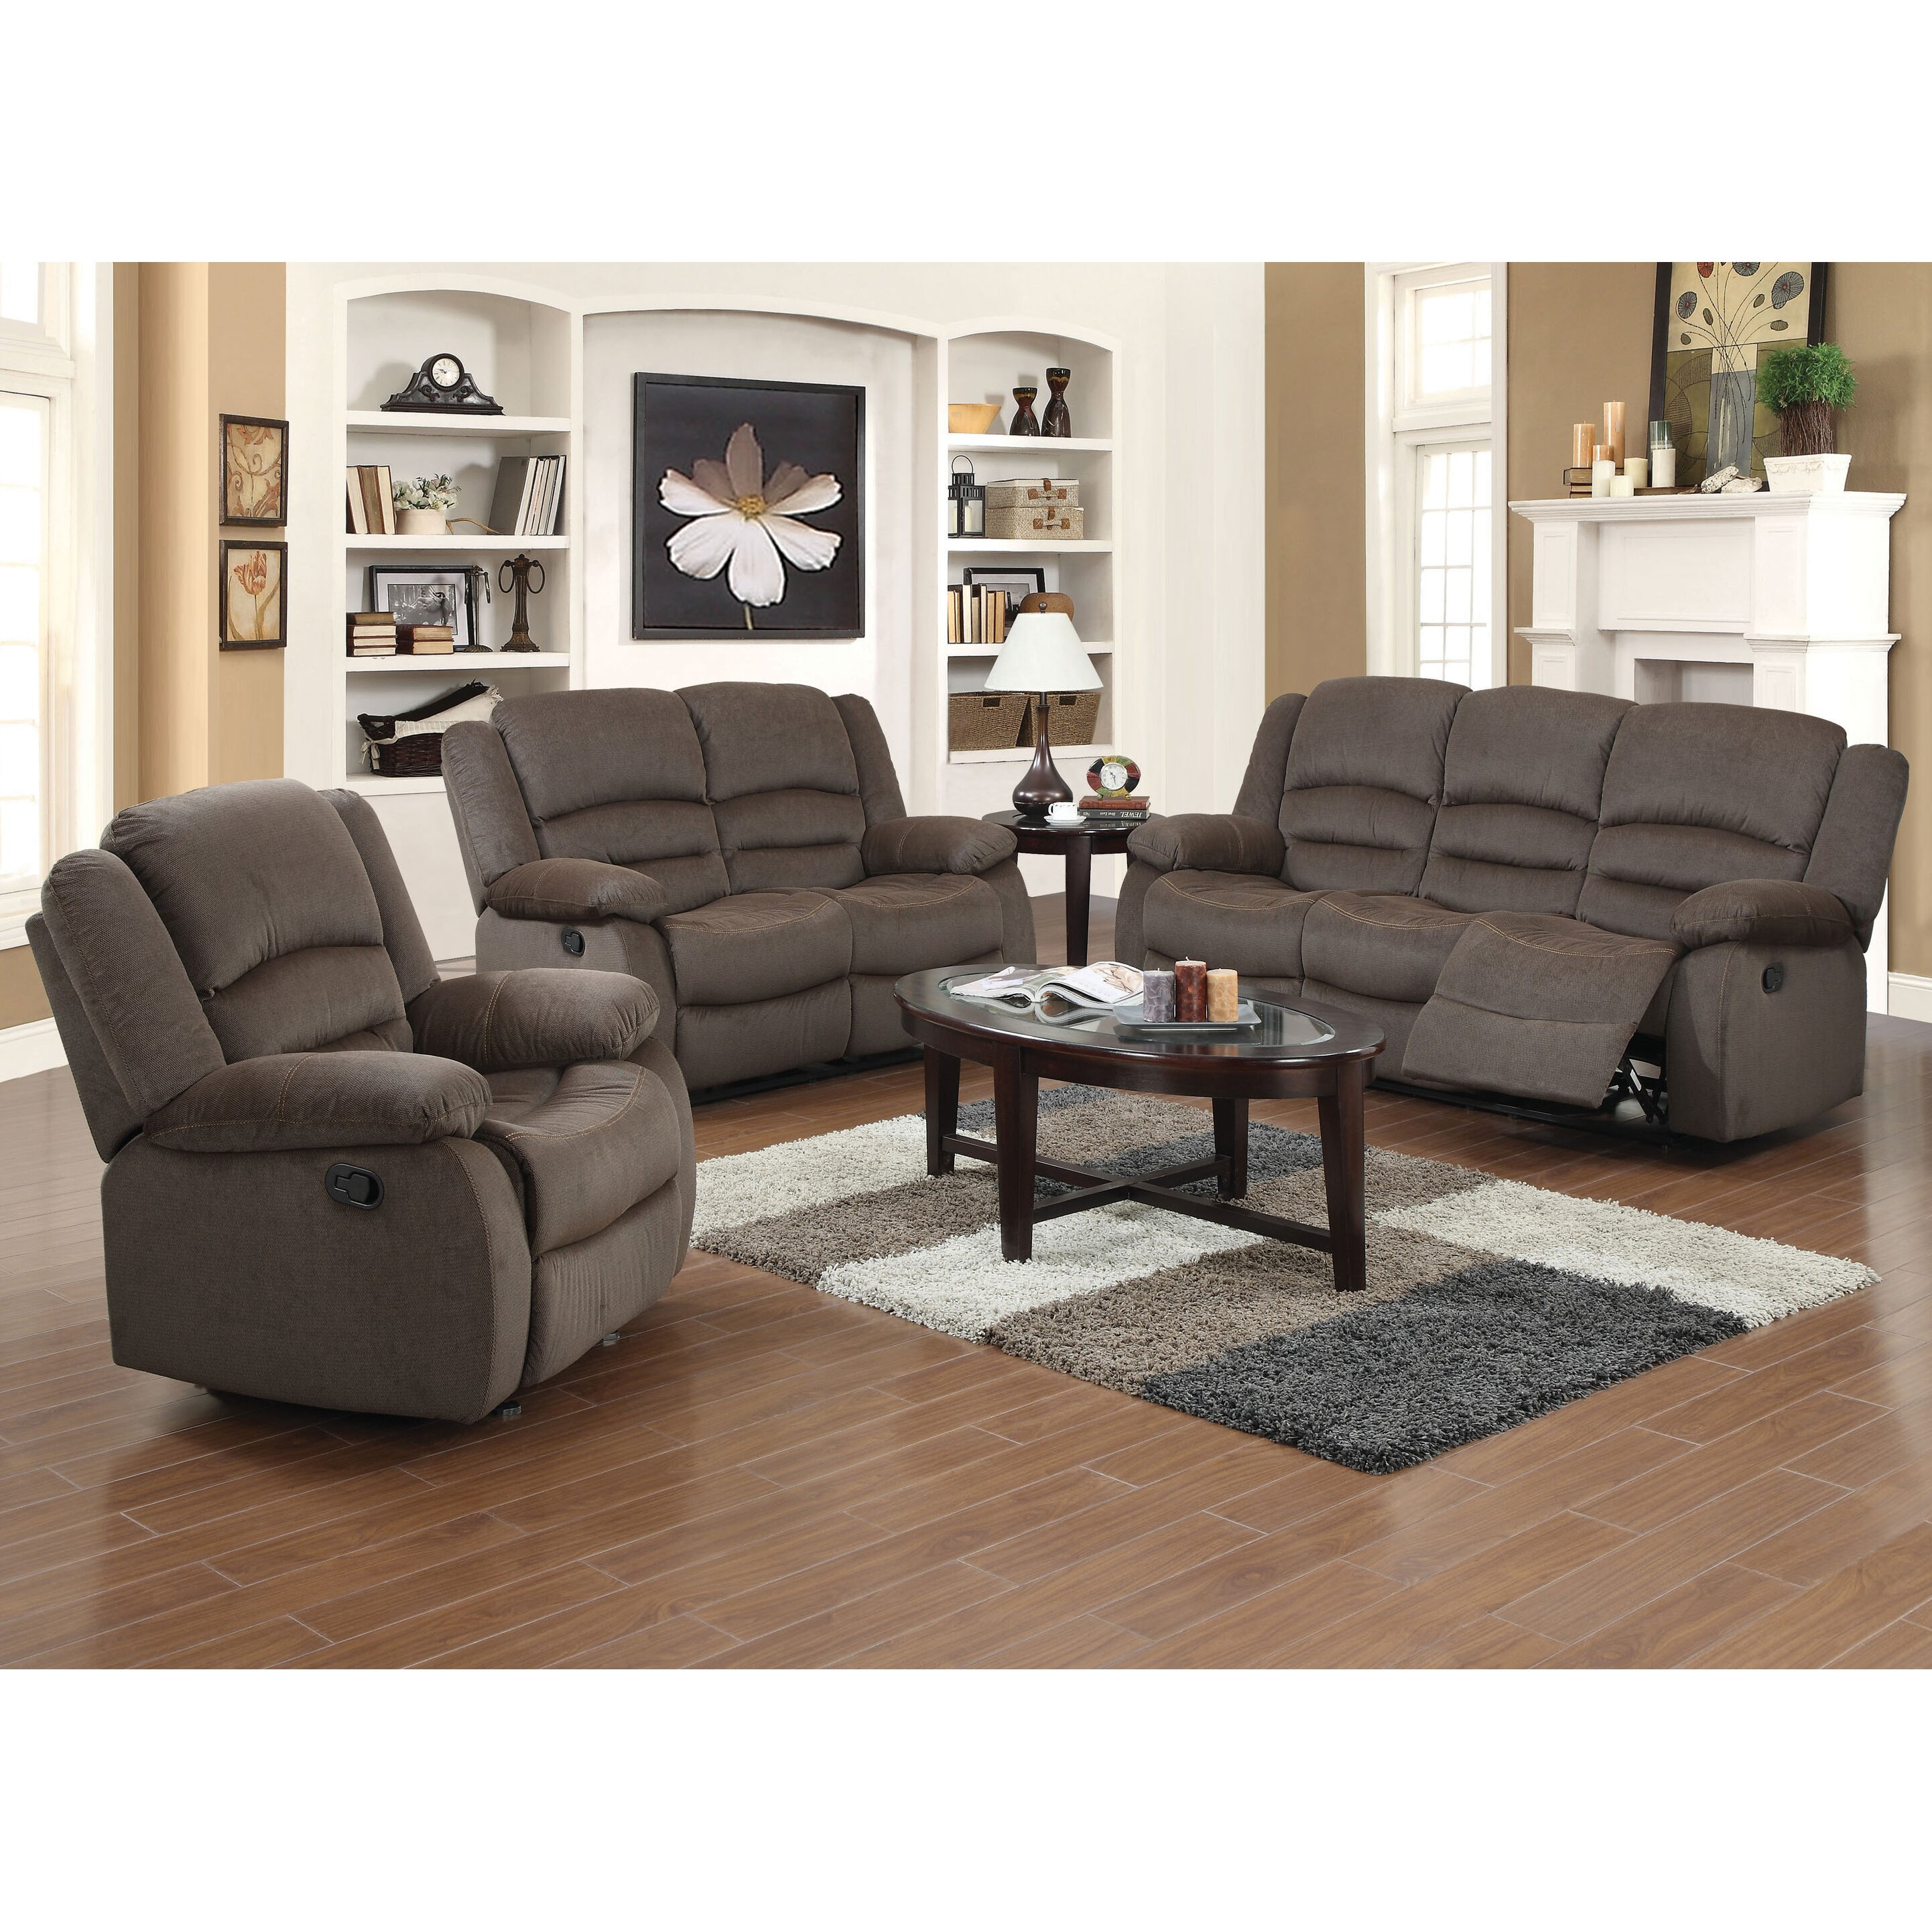 piece recliner sofa set by container